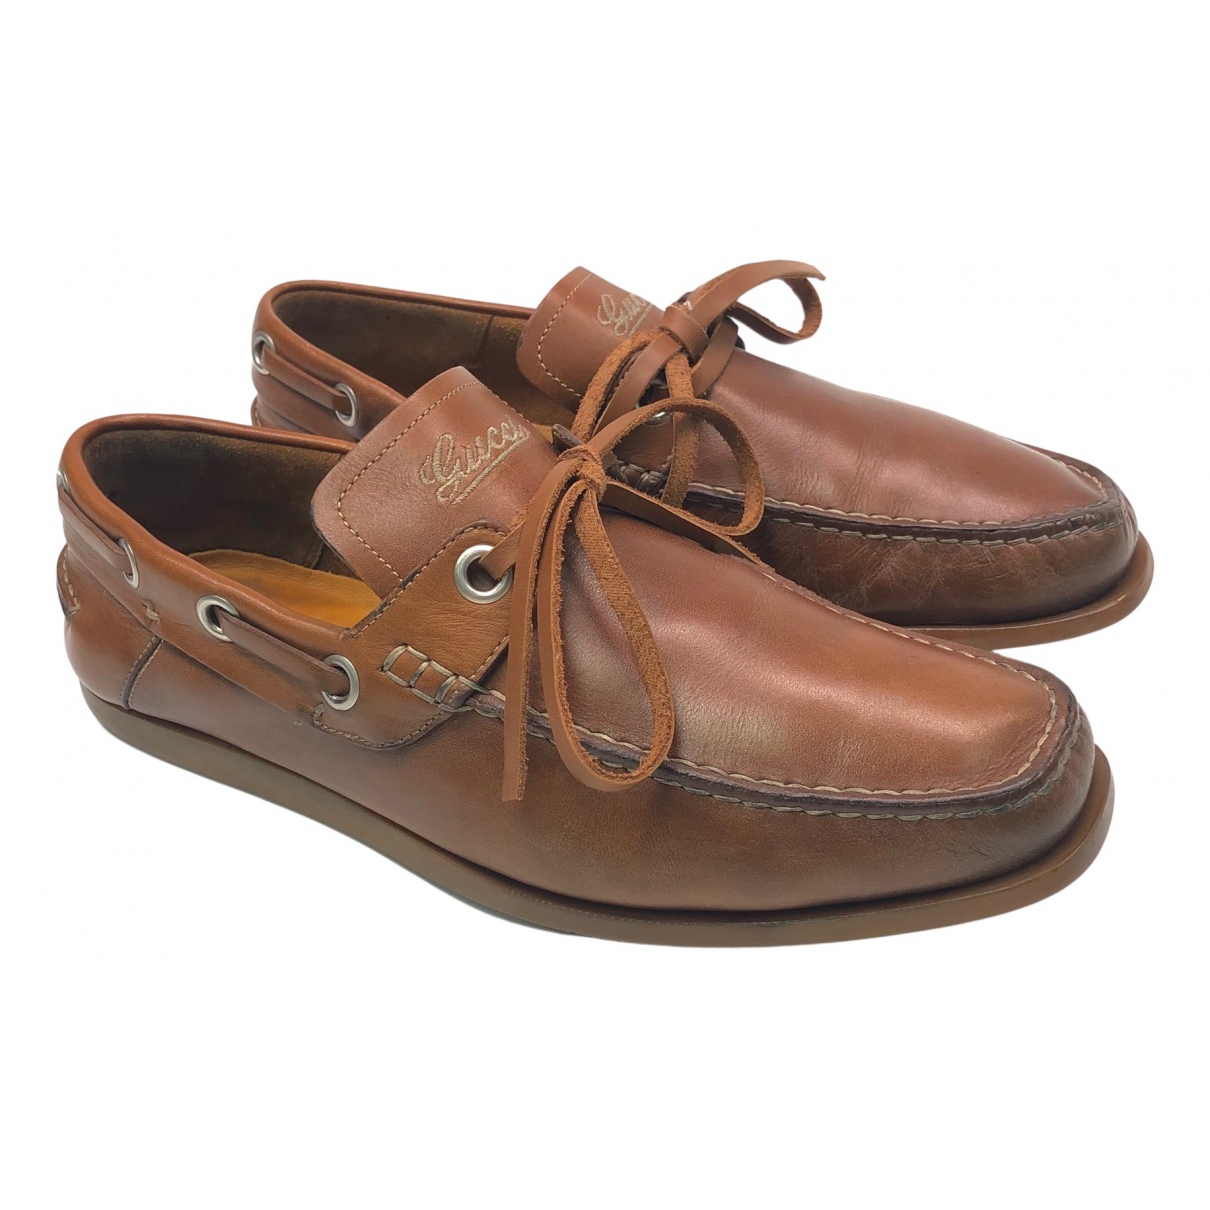 Gucci N Brown Leather Flats for Men 41 EU